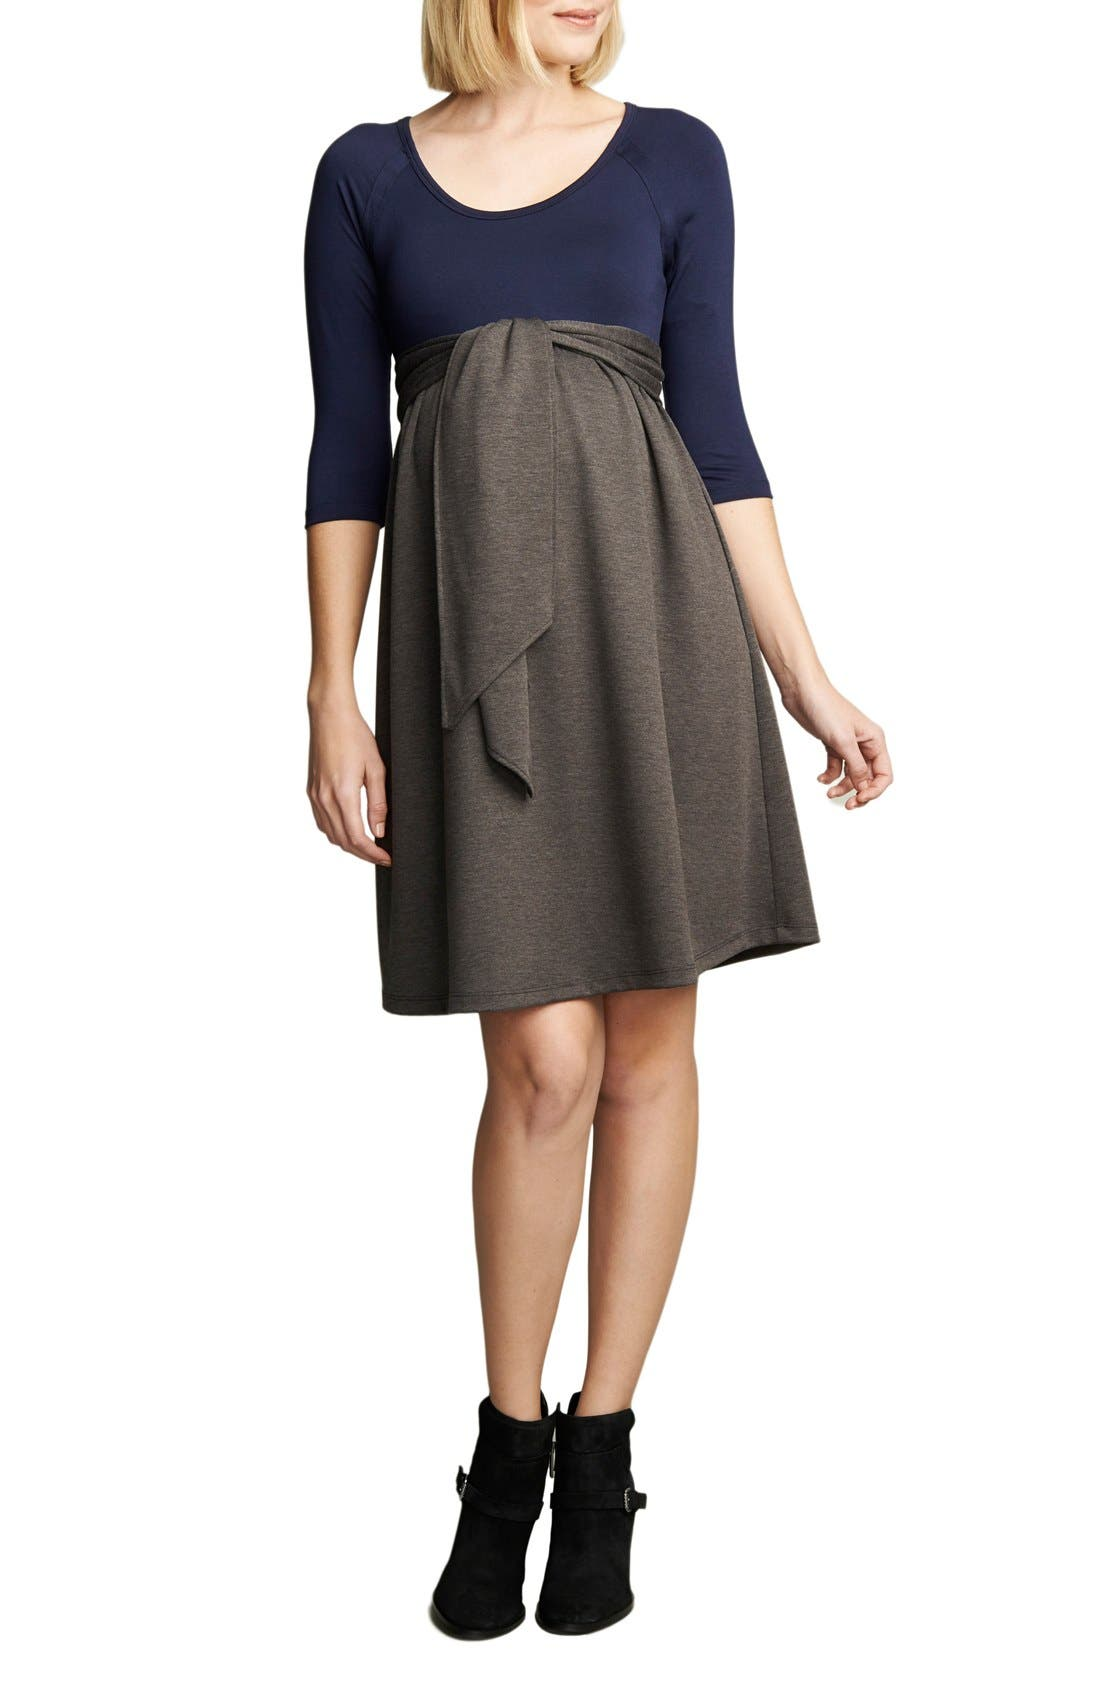 Tie Front Maternity Dress,                             Main thumbnail 1, color,                             Navy/Charcoal